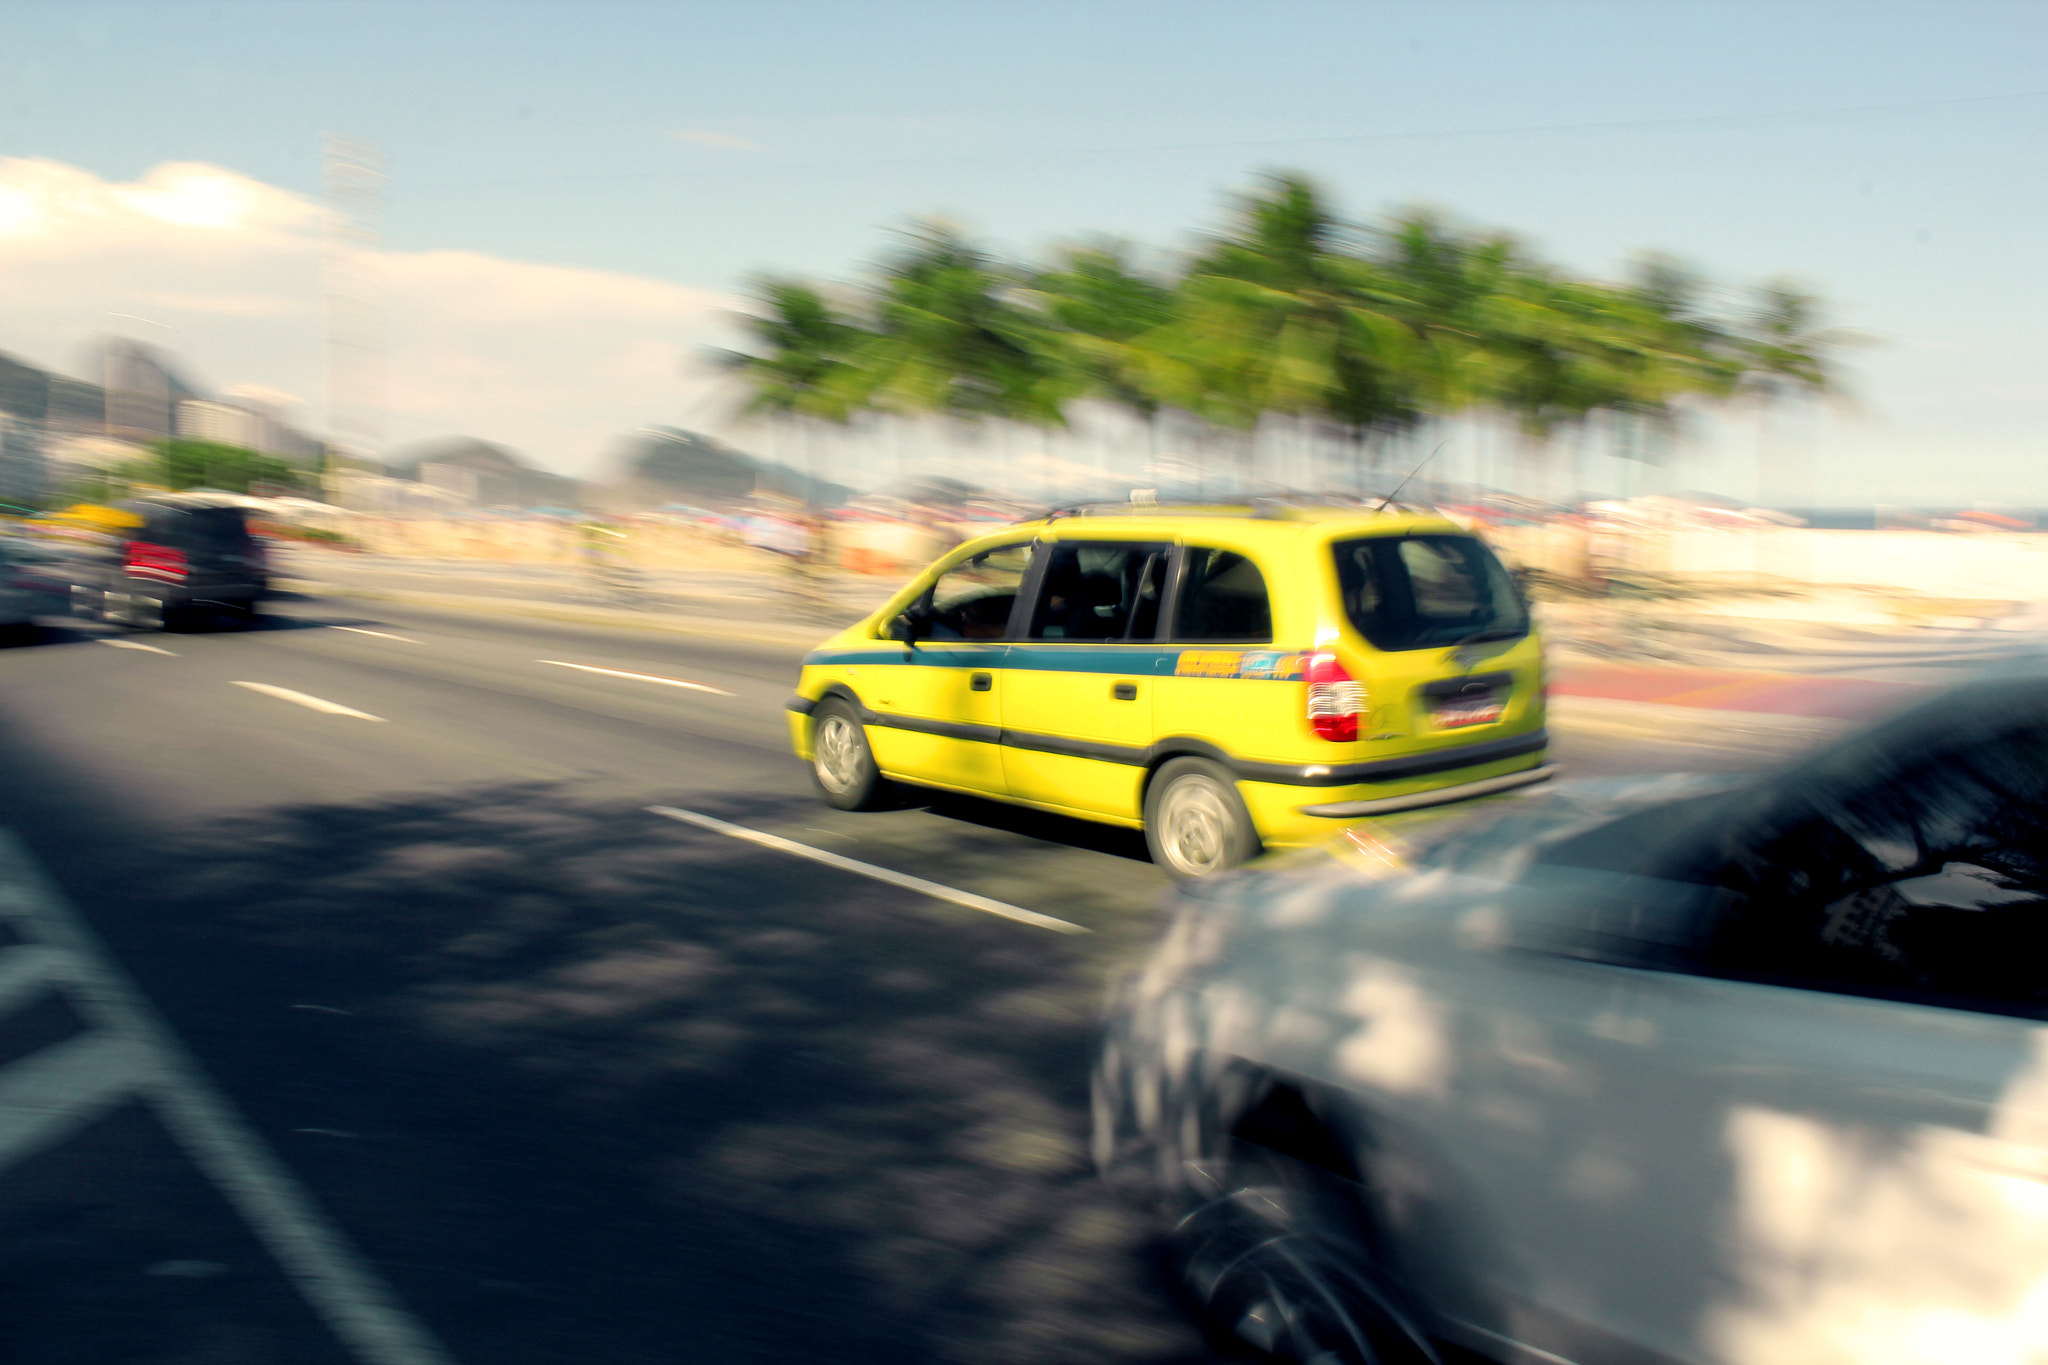 Photograph Taxi by Murillo Martins on 500px